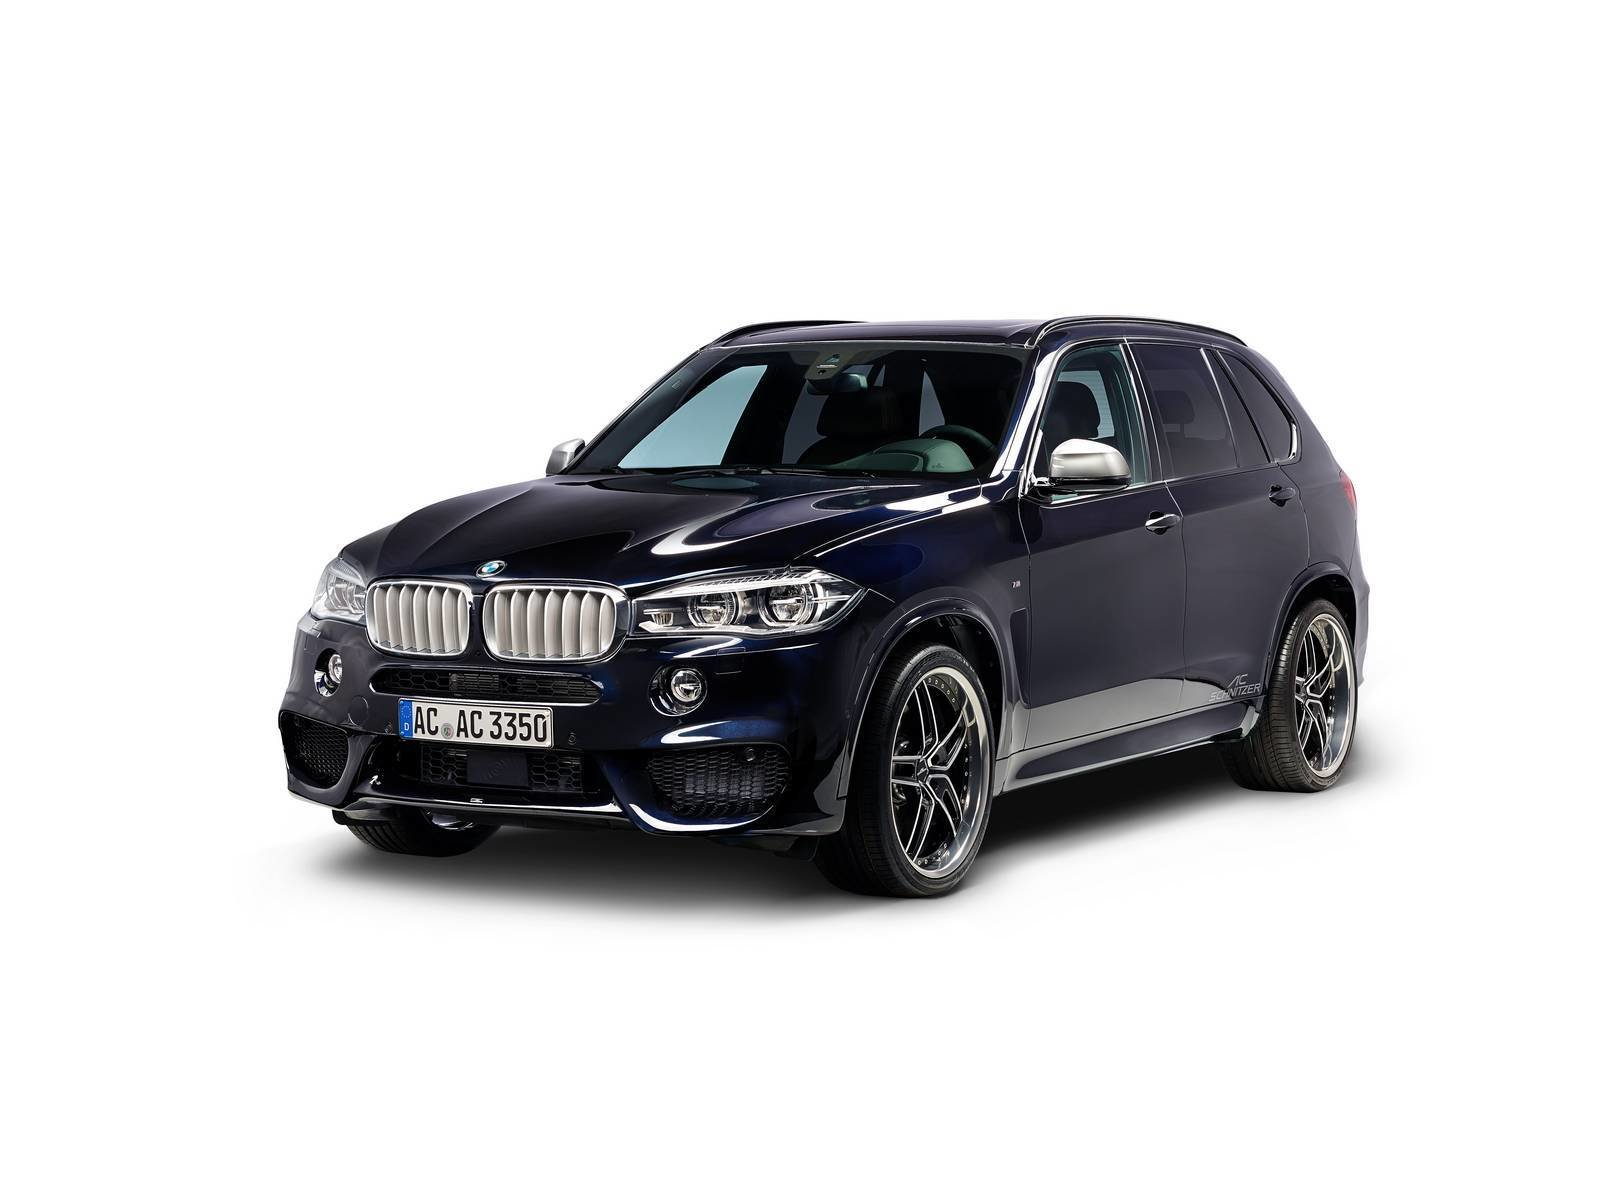 Latest Bmw X5 M50D By Ac Schnitzer Unveiled Online Autoevolution Free Download